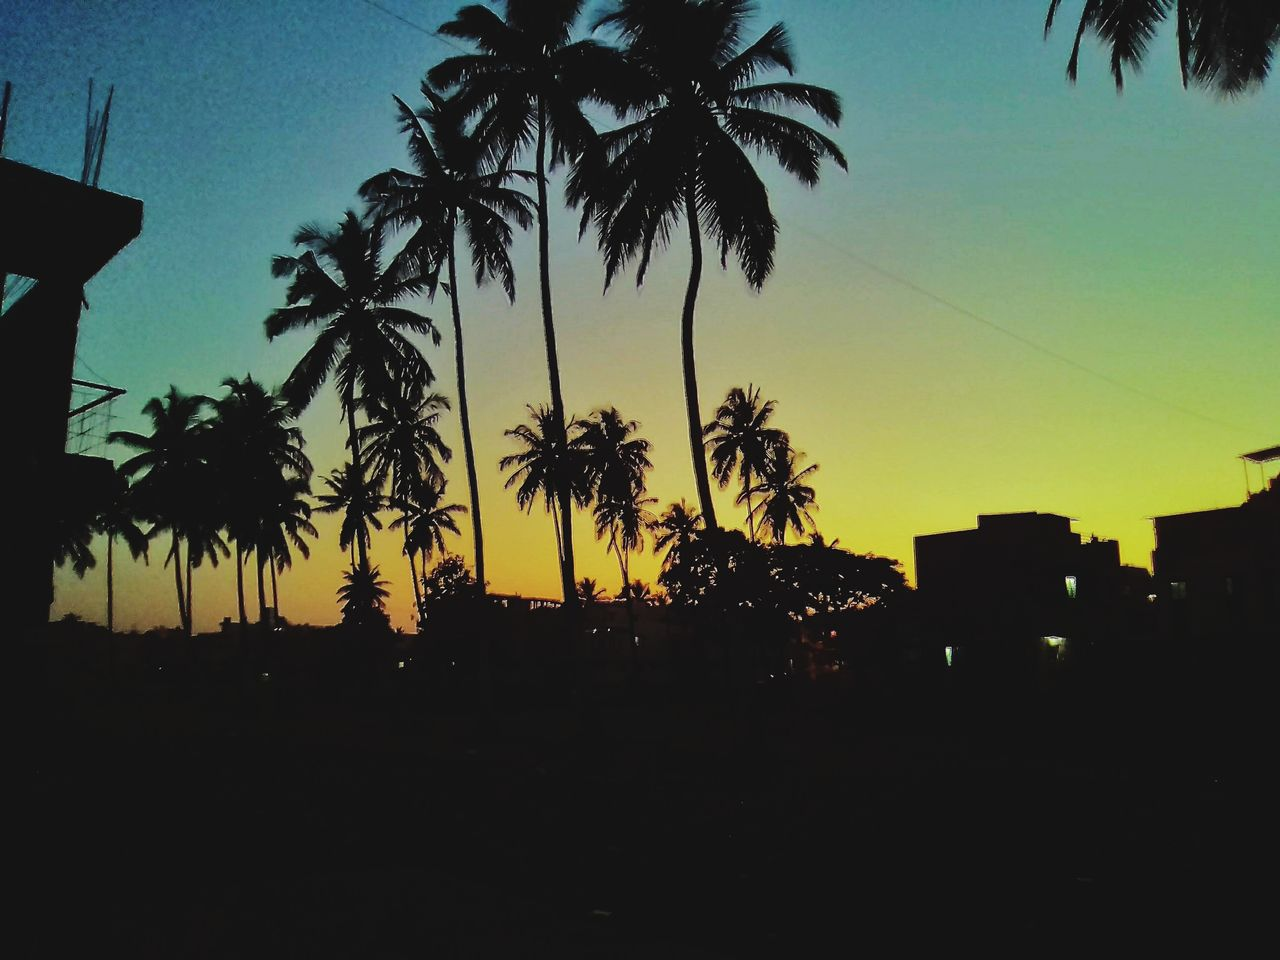 palm tree, silhouette, sunset, tree, growth, nature, clear sky, no people, sky, beauty in nature, outdoors